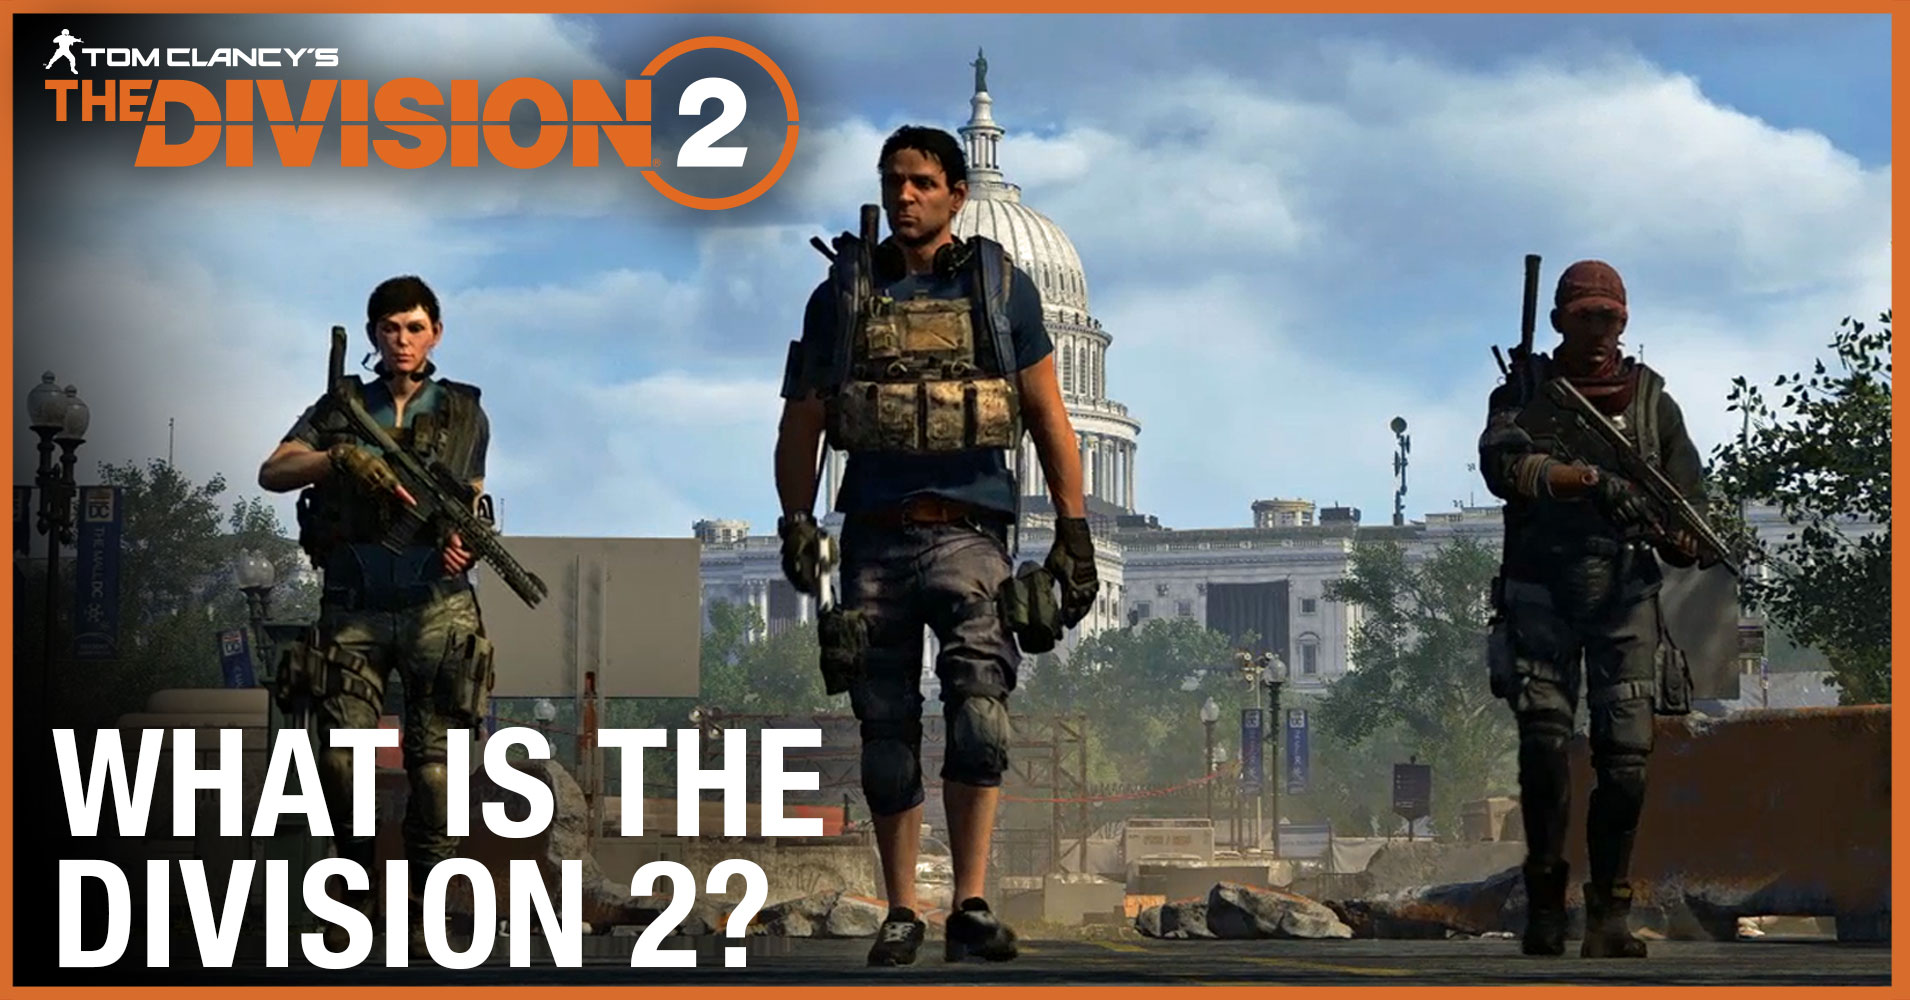 Tom Clancy's The Division 2 for Xbox One   Xbox